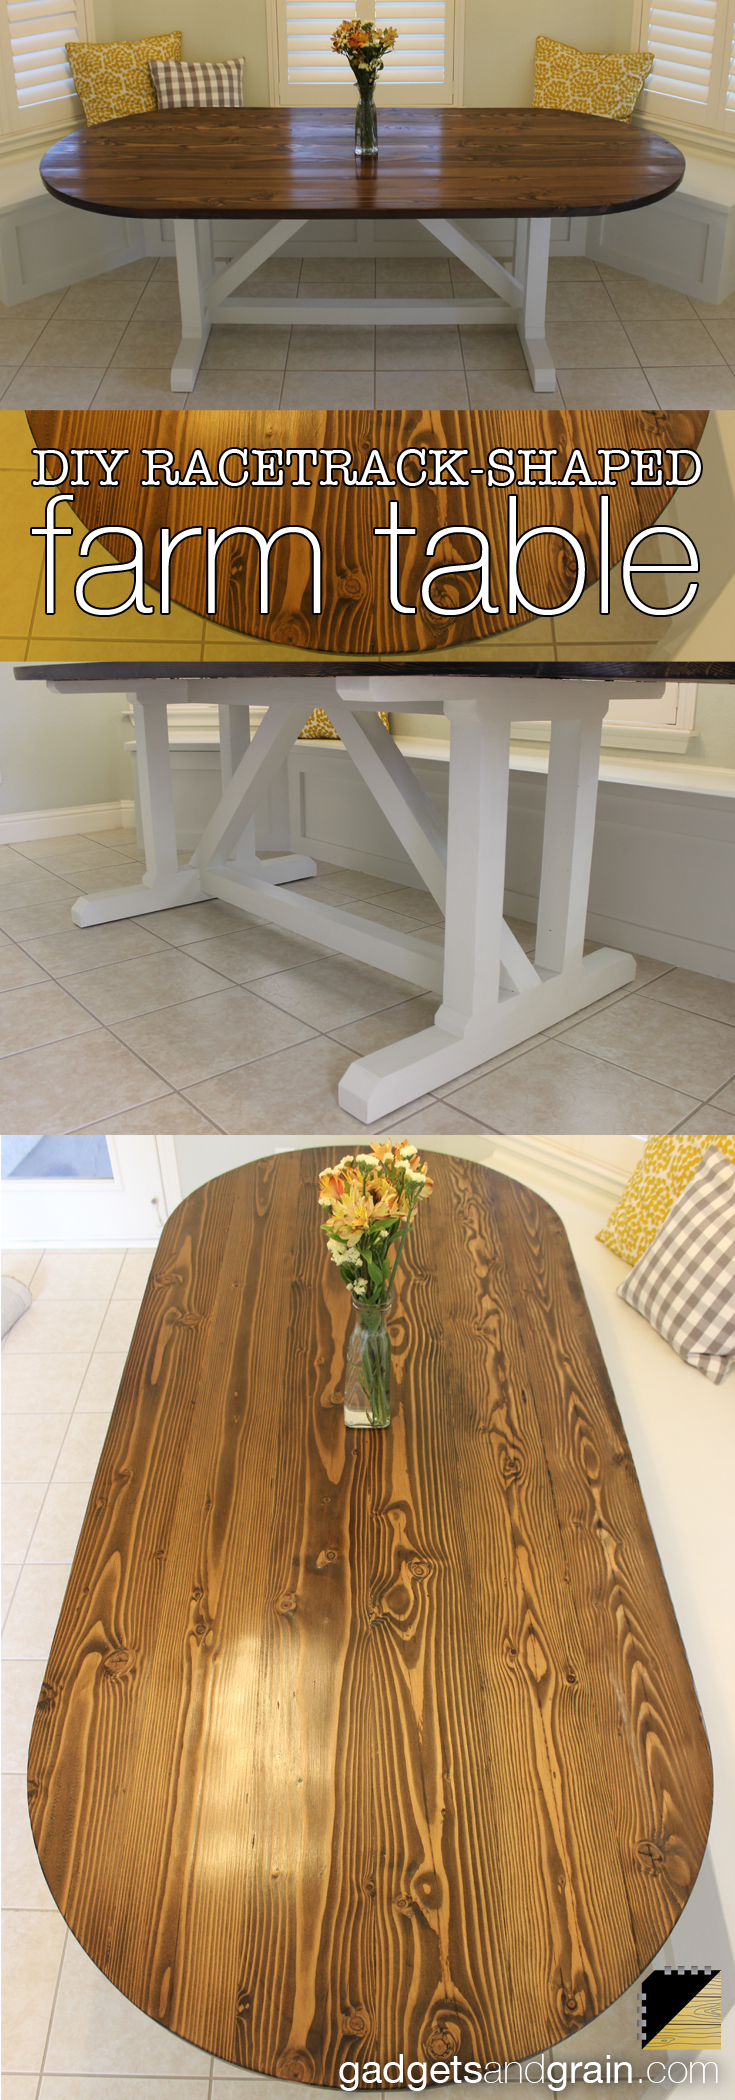 various views of the dining table